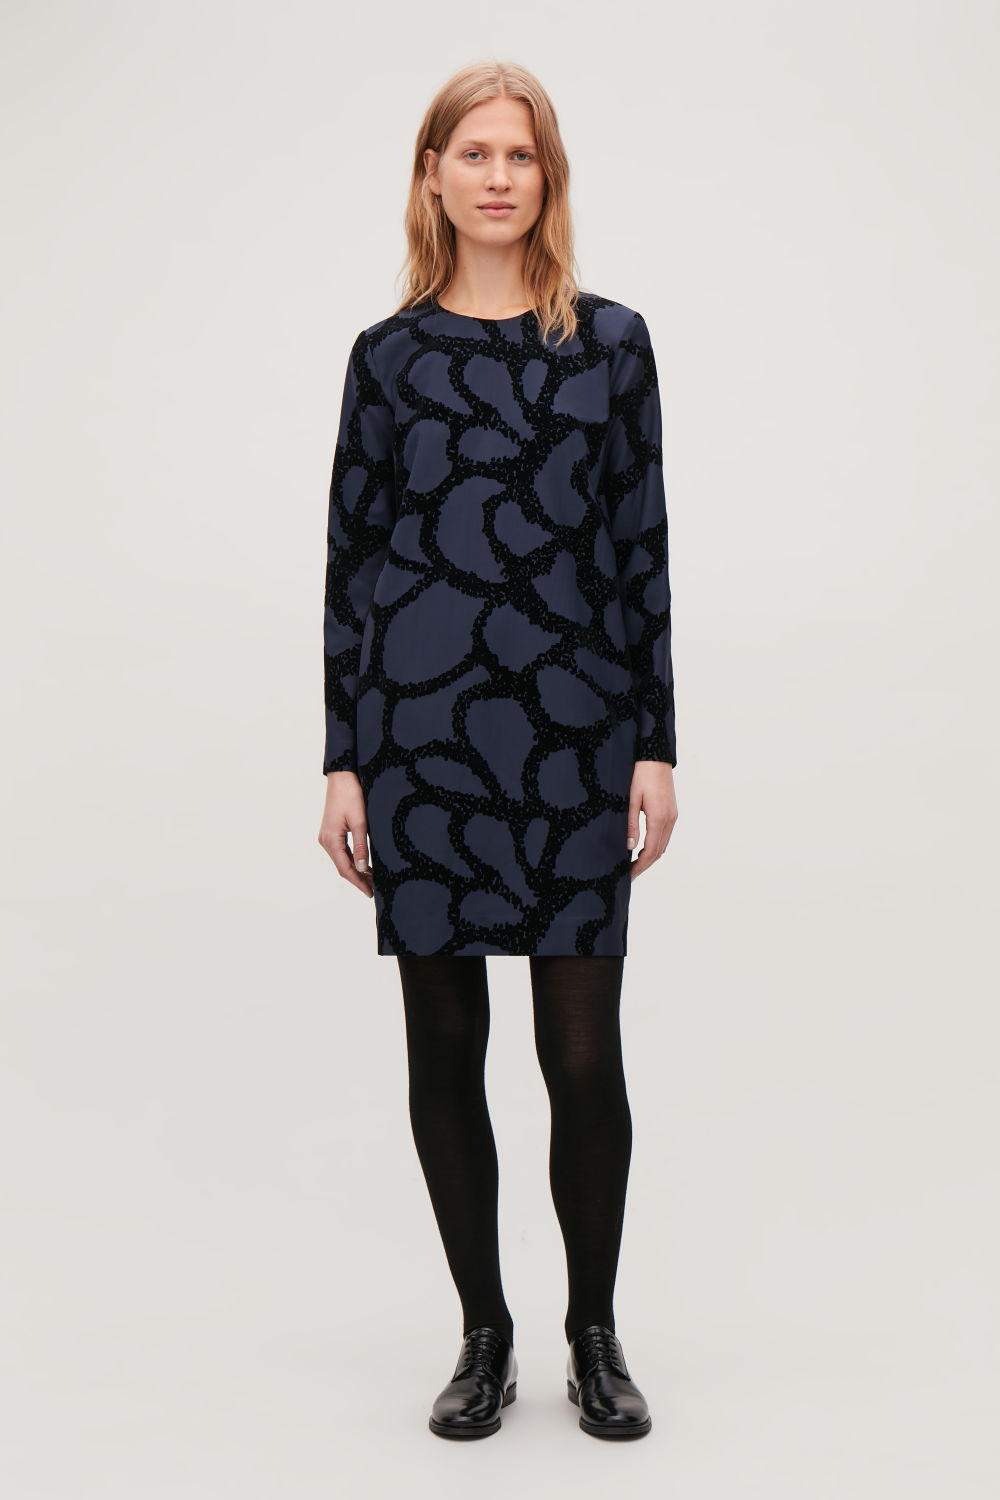 COS FLOCK-PRINT DRESS,Midnight blue \/ black